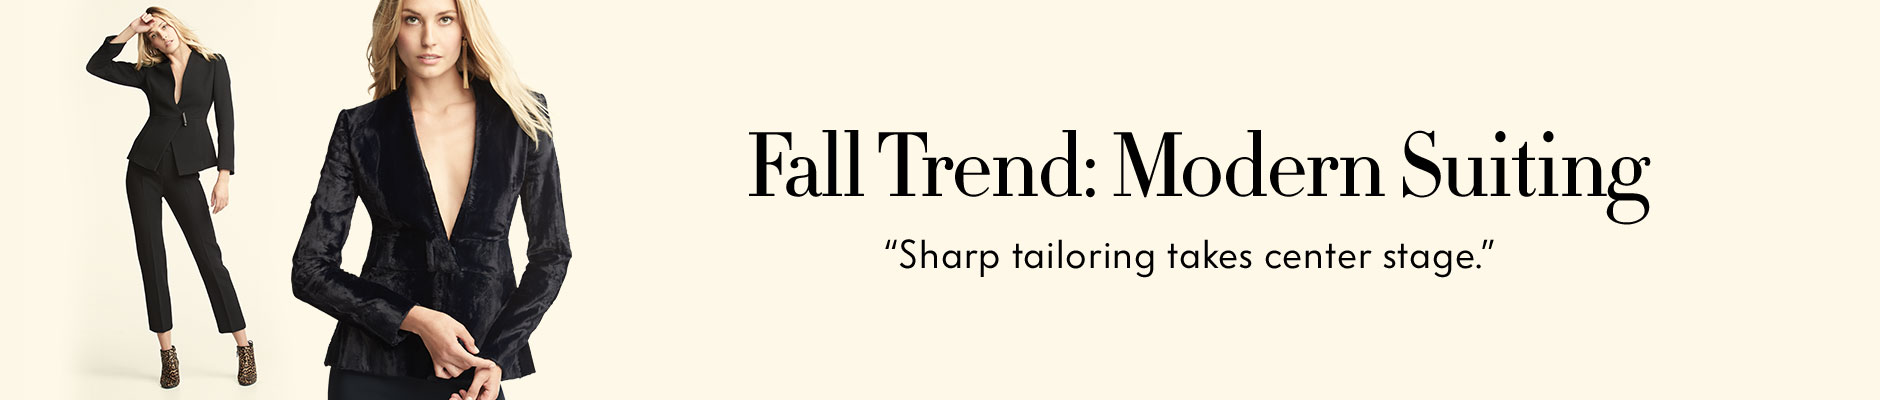 Fall Trend: Modern Suiting - Sharp tailoring takes center stage.